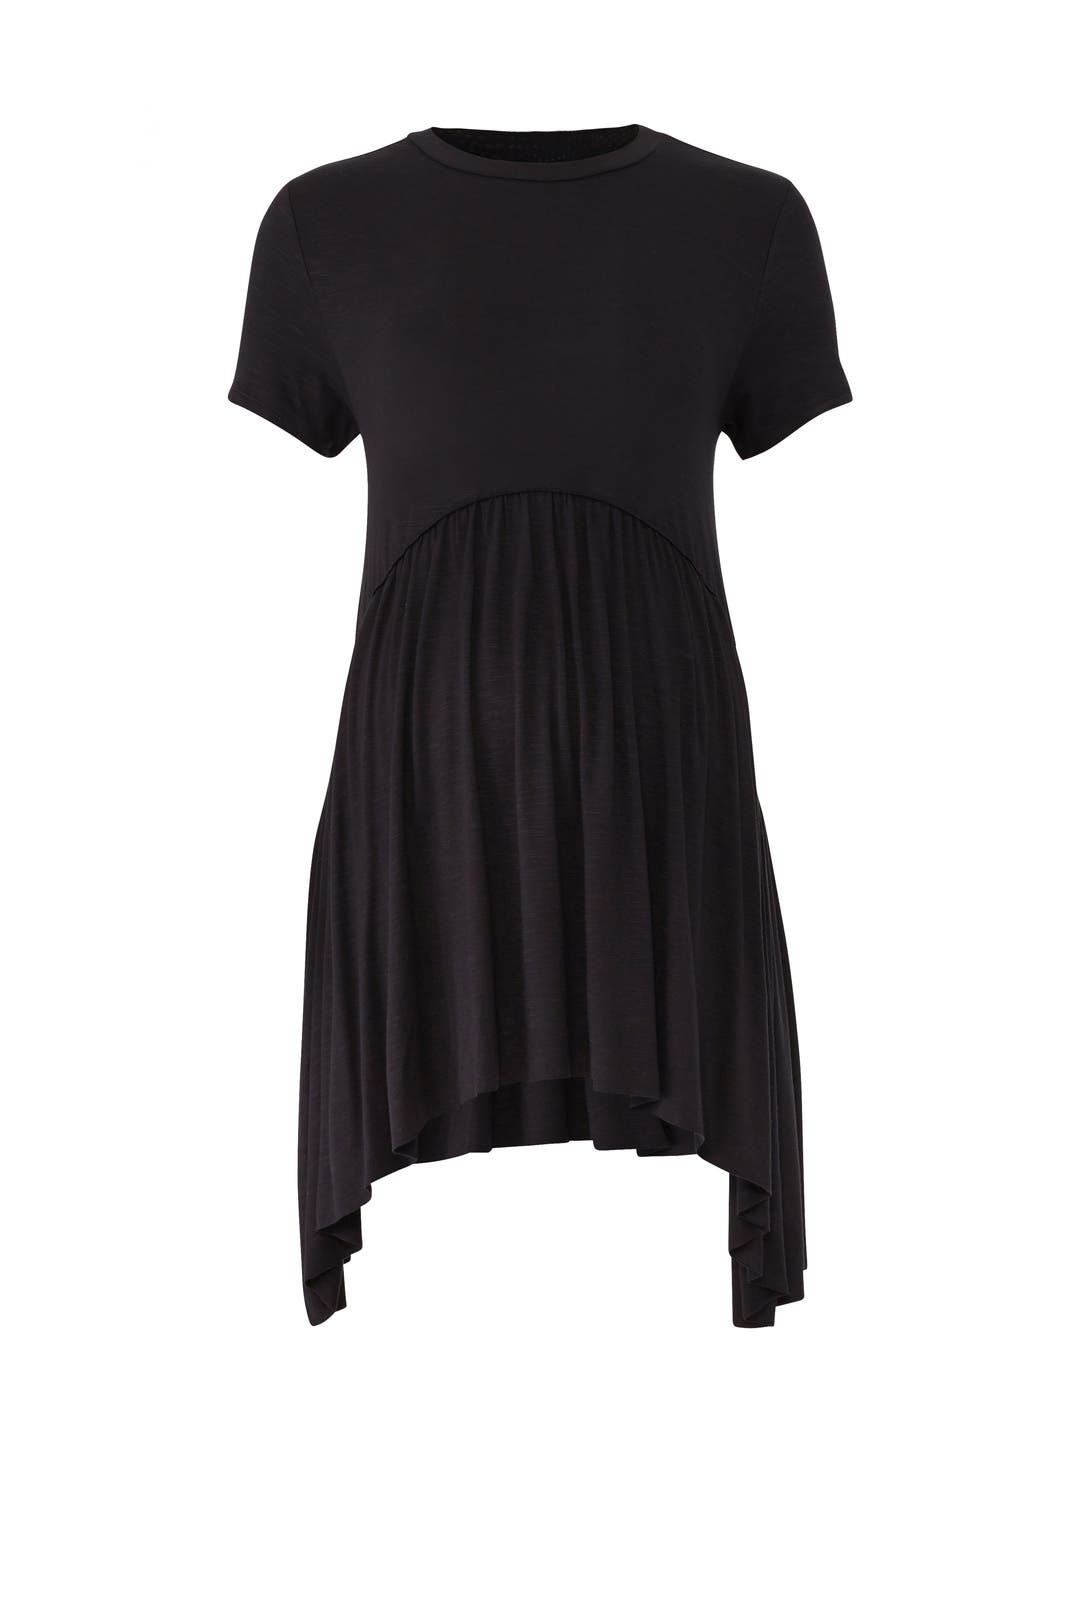 36aef56b78fe9 Handkerchief Hem Maternity Top by Ingrid & Isabel for $30 | Rent the ...